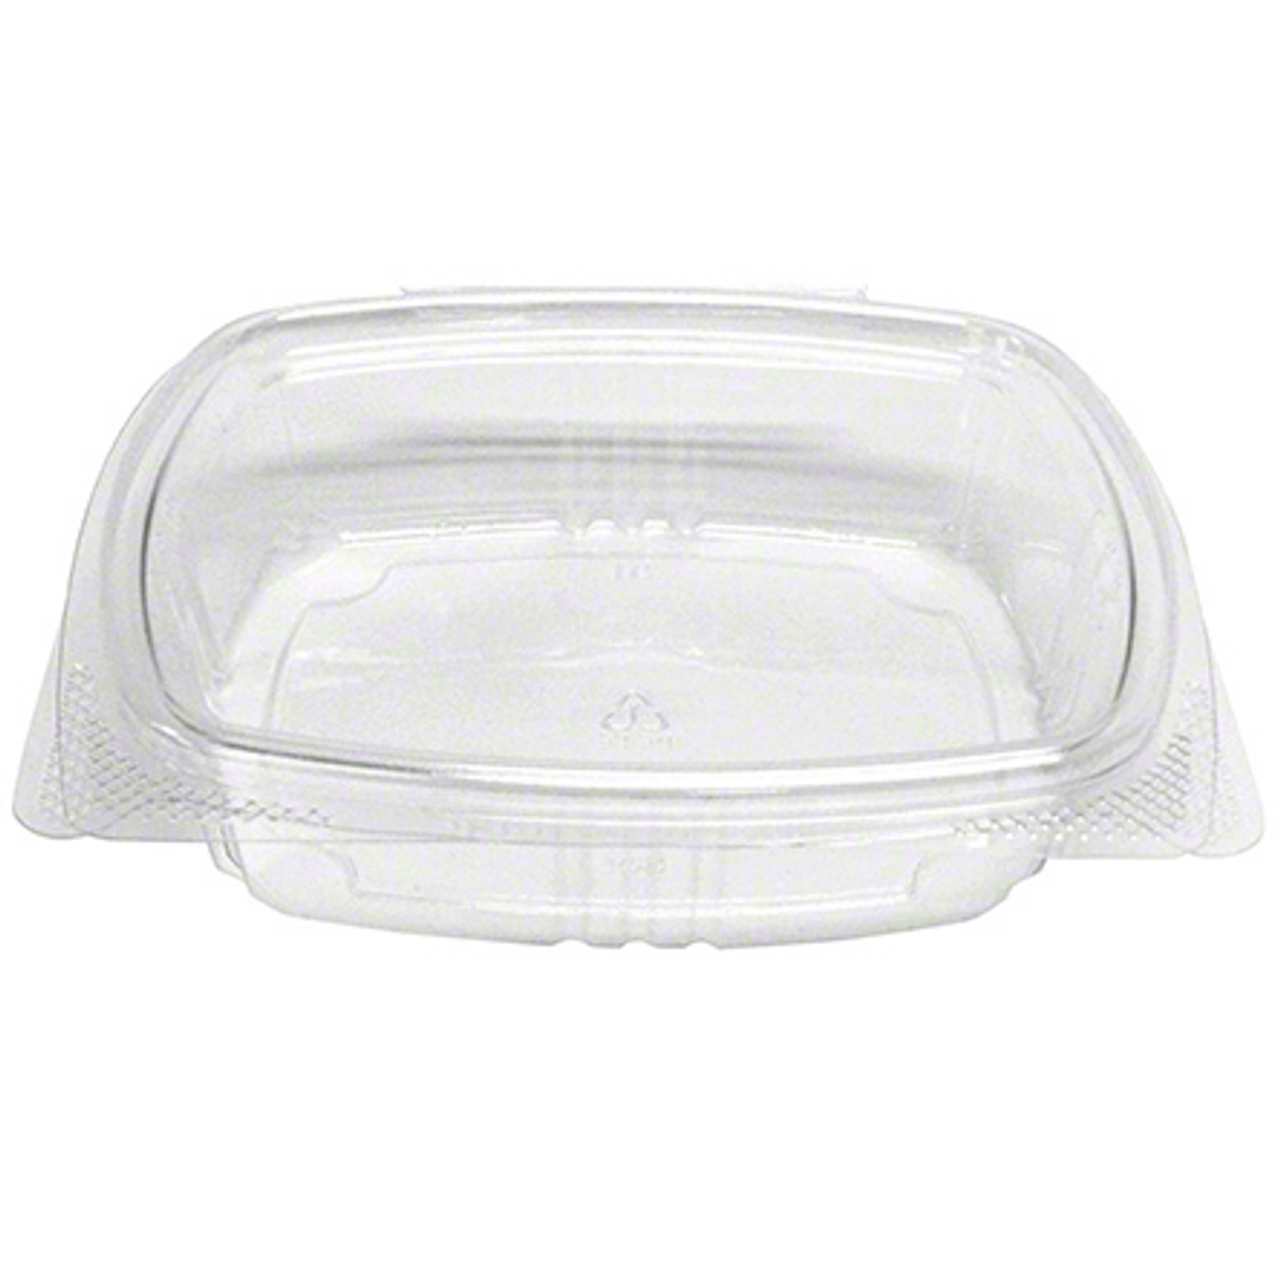 Hinged Lid PET Deli Containers